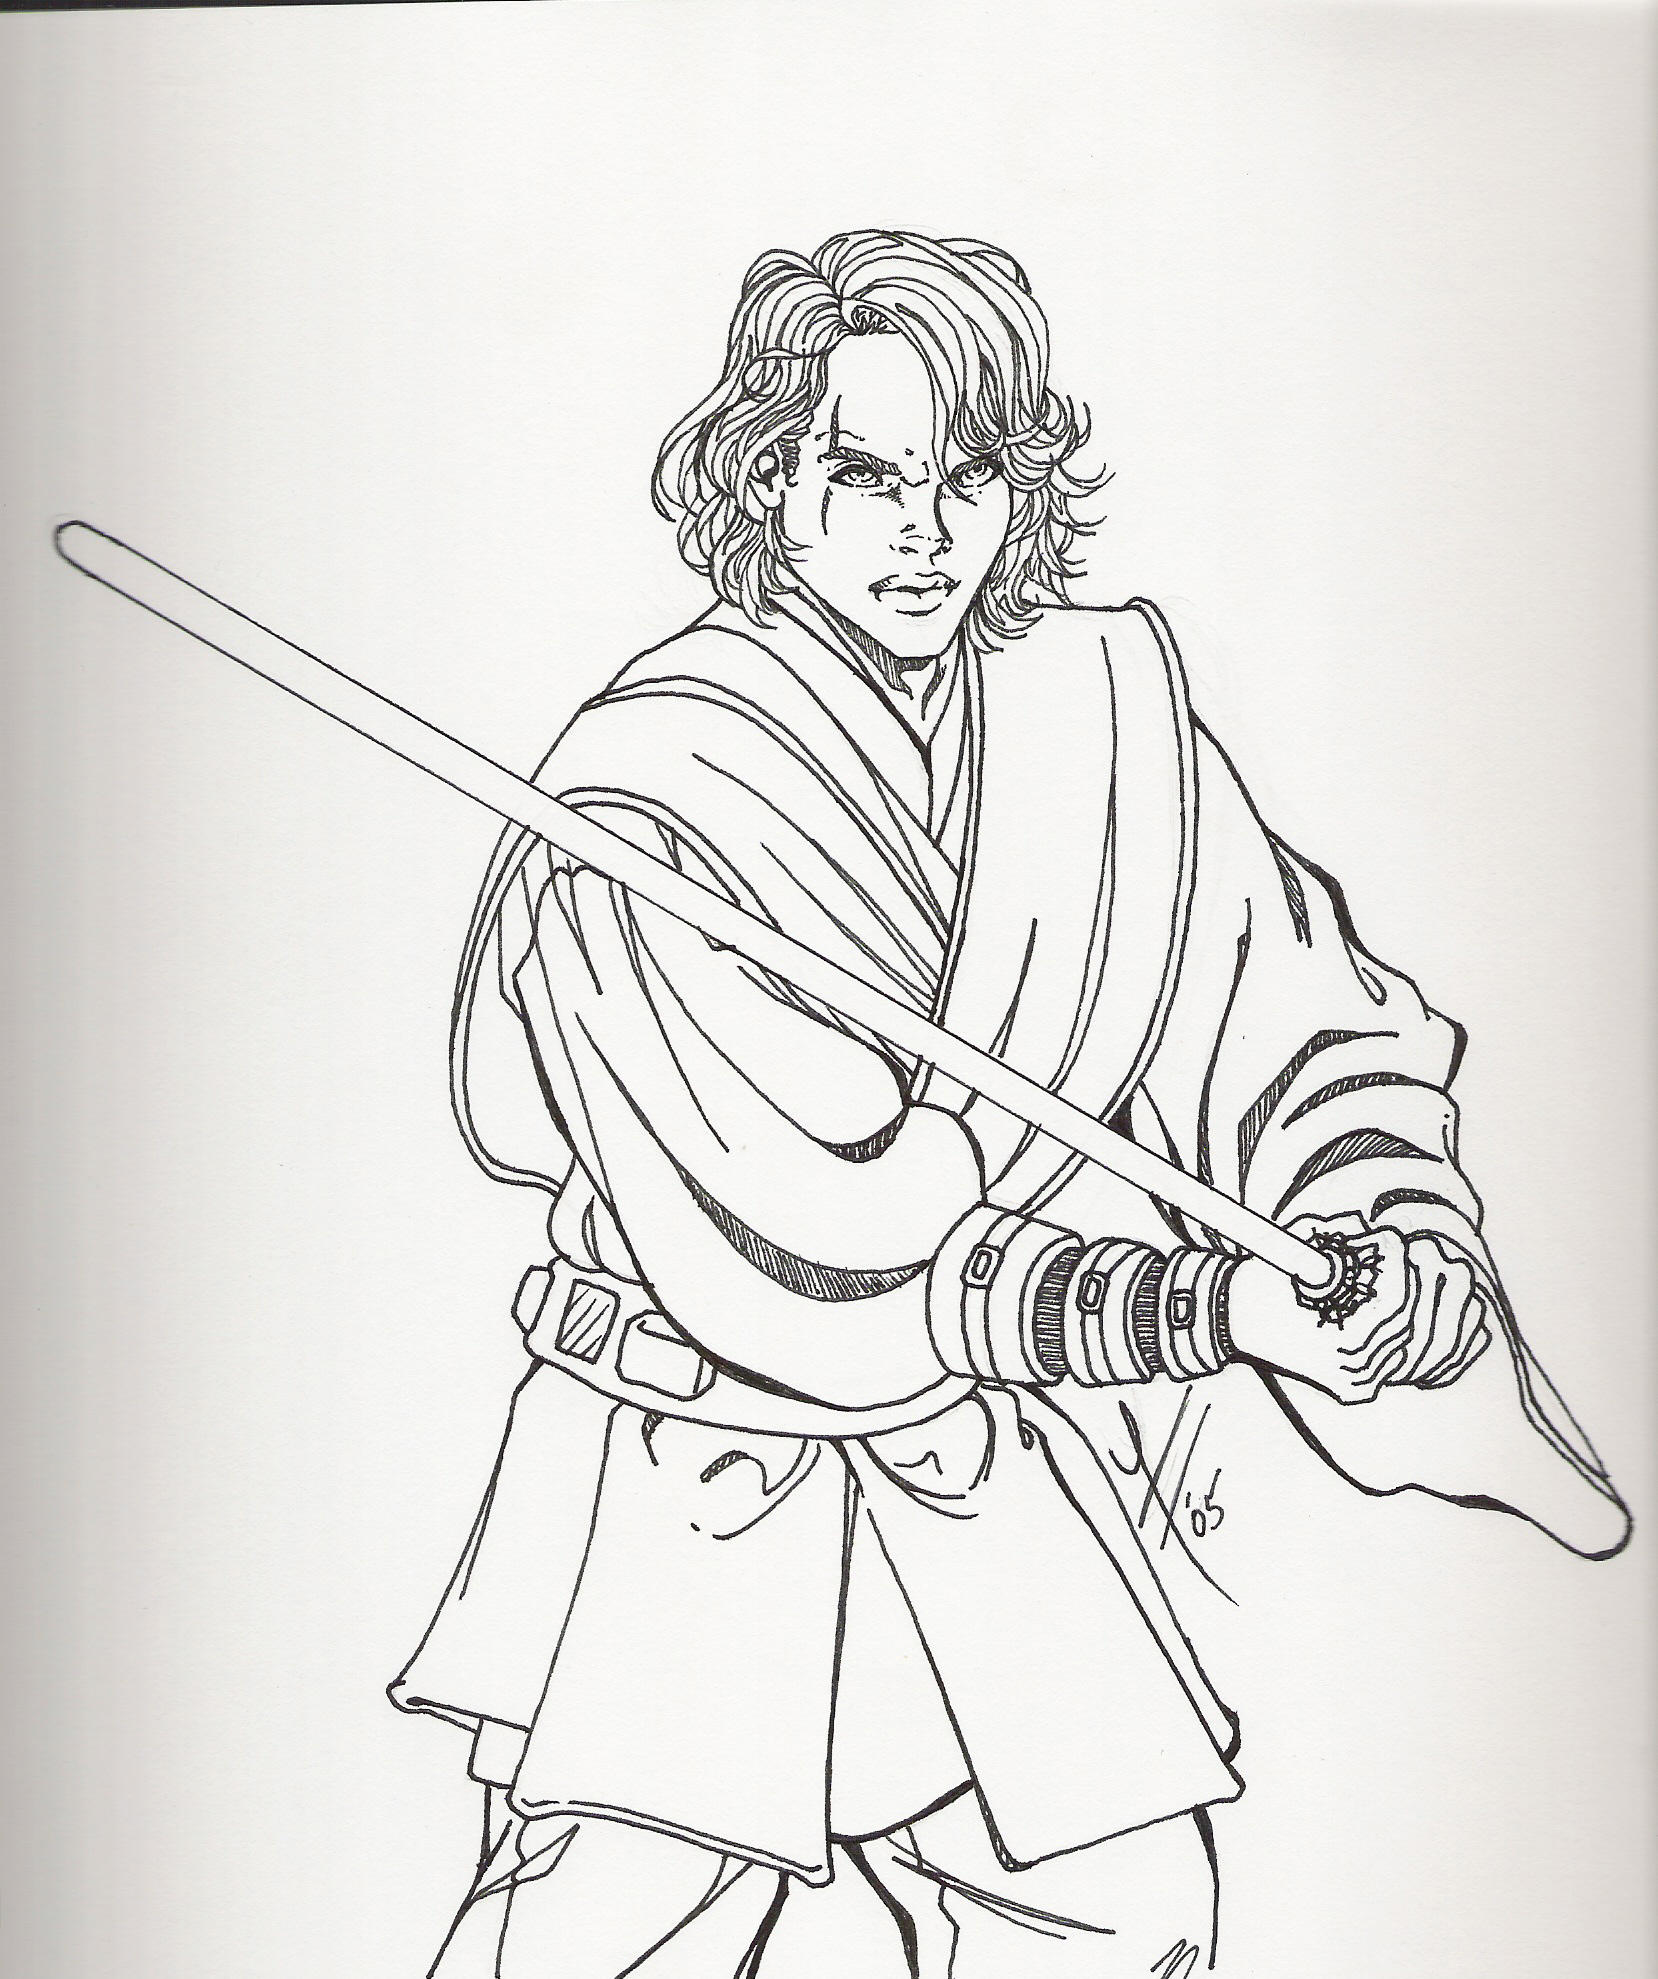 Star Wars Anakin Skywalker Coloring Pages Pictures to Pin on